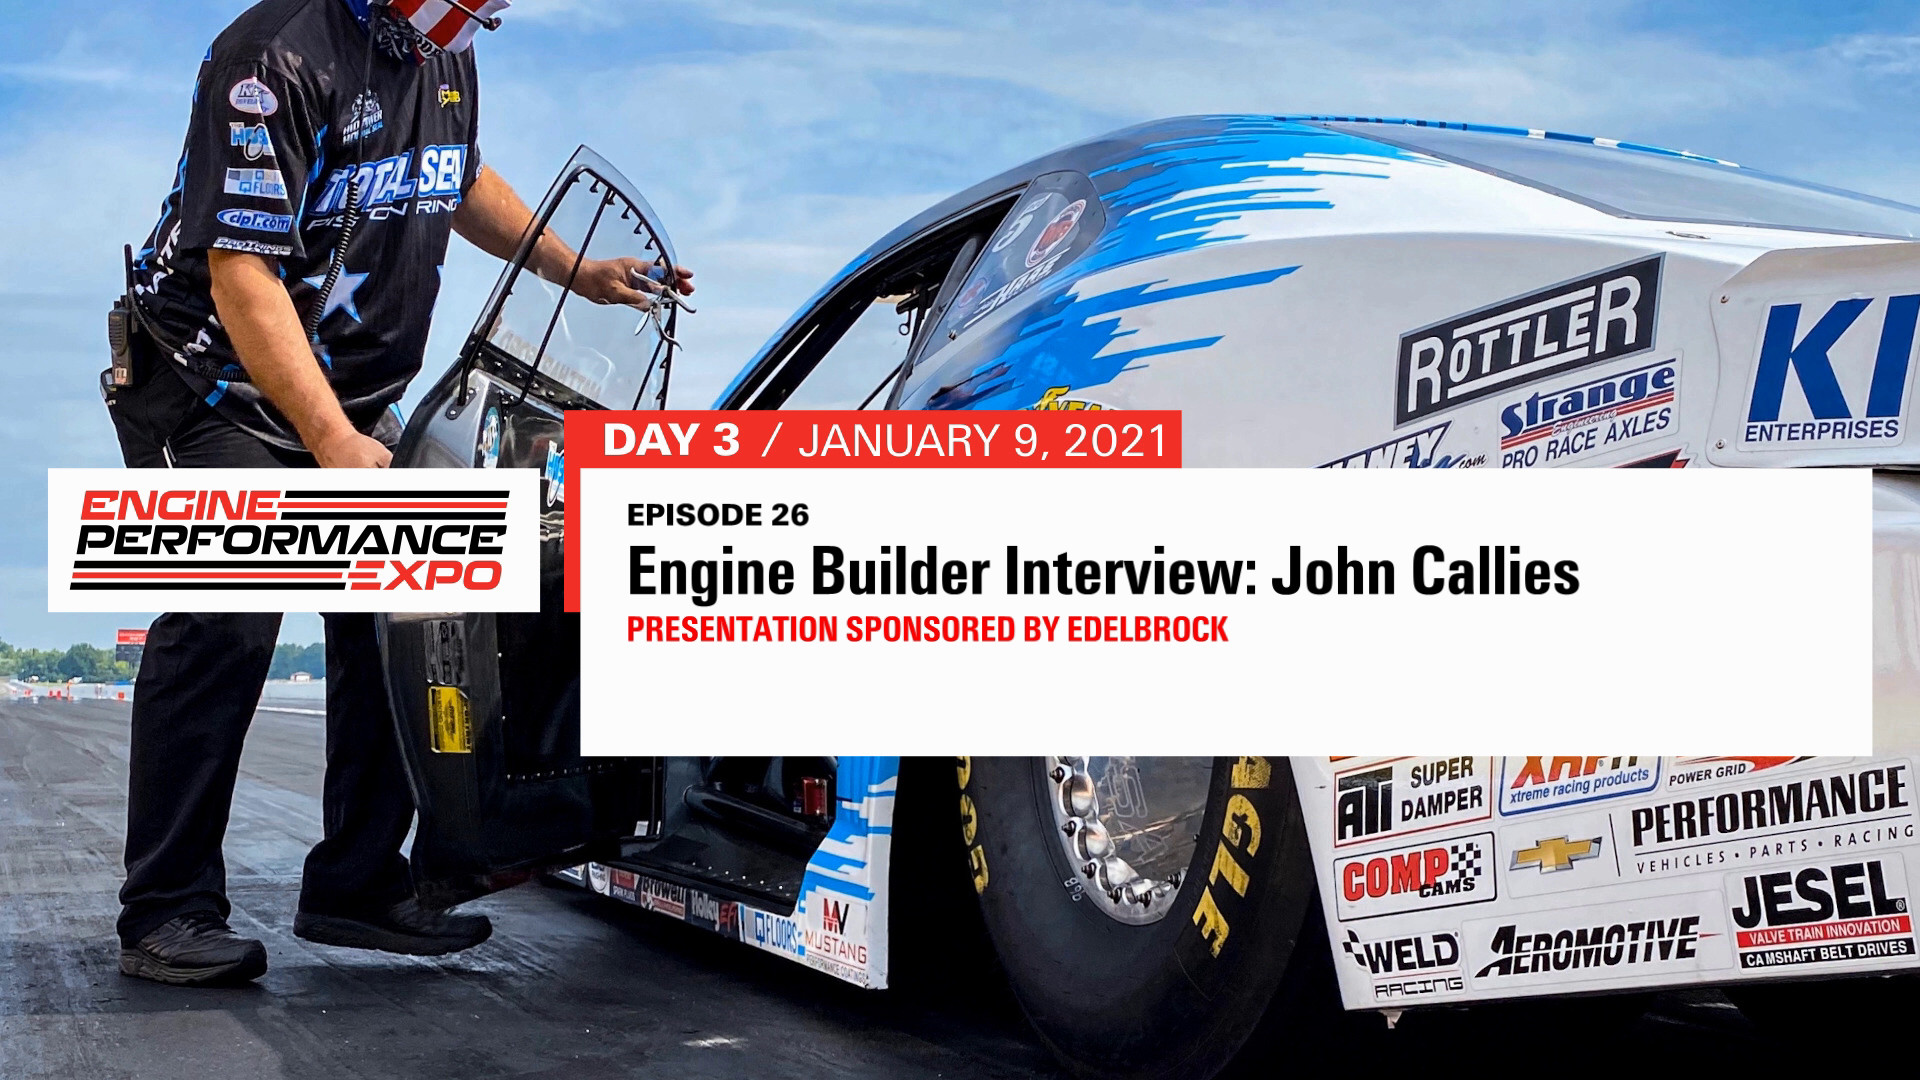 Engine buildier interview with John Callies